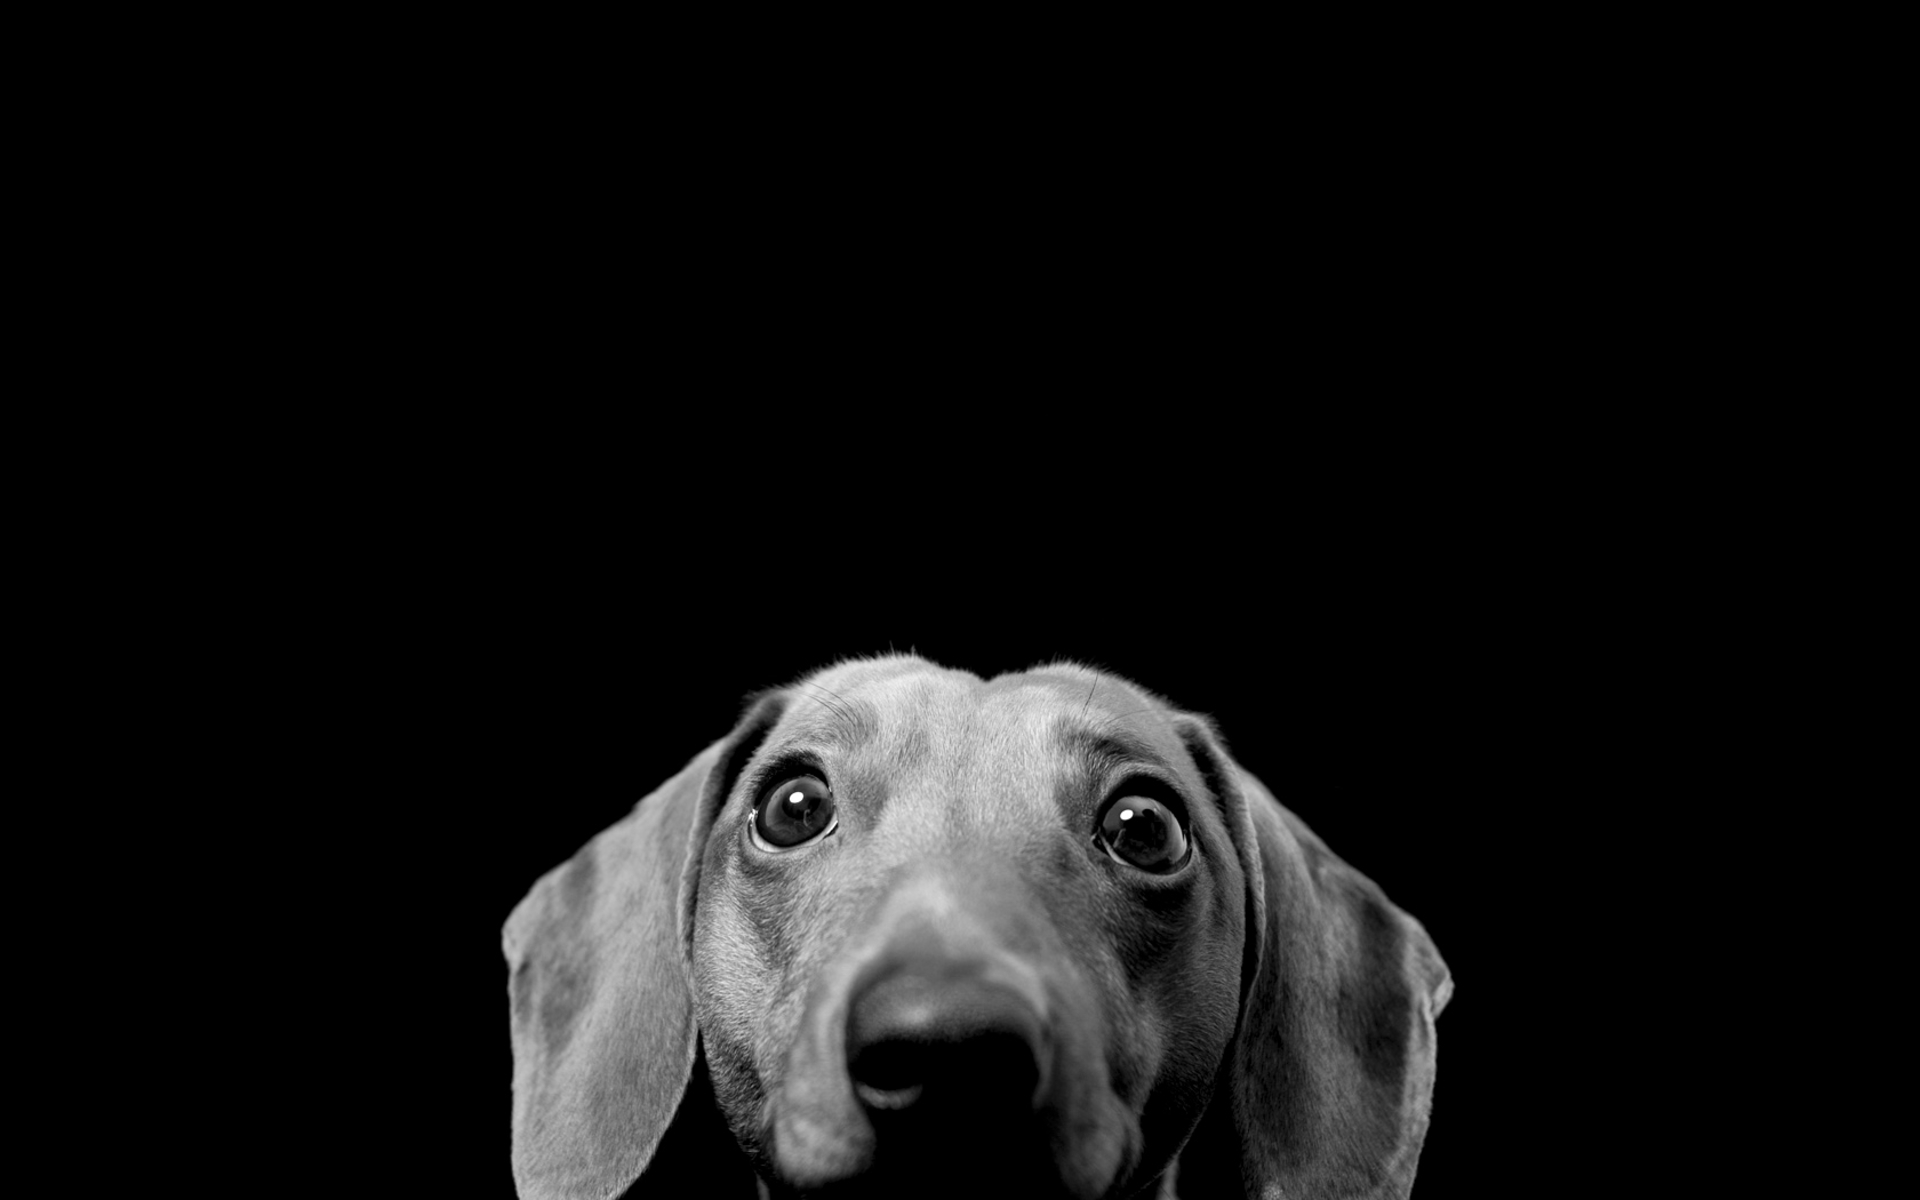 Dog Wallpaper Black And White